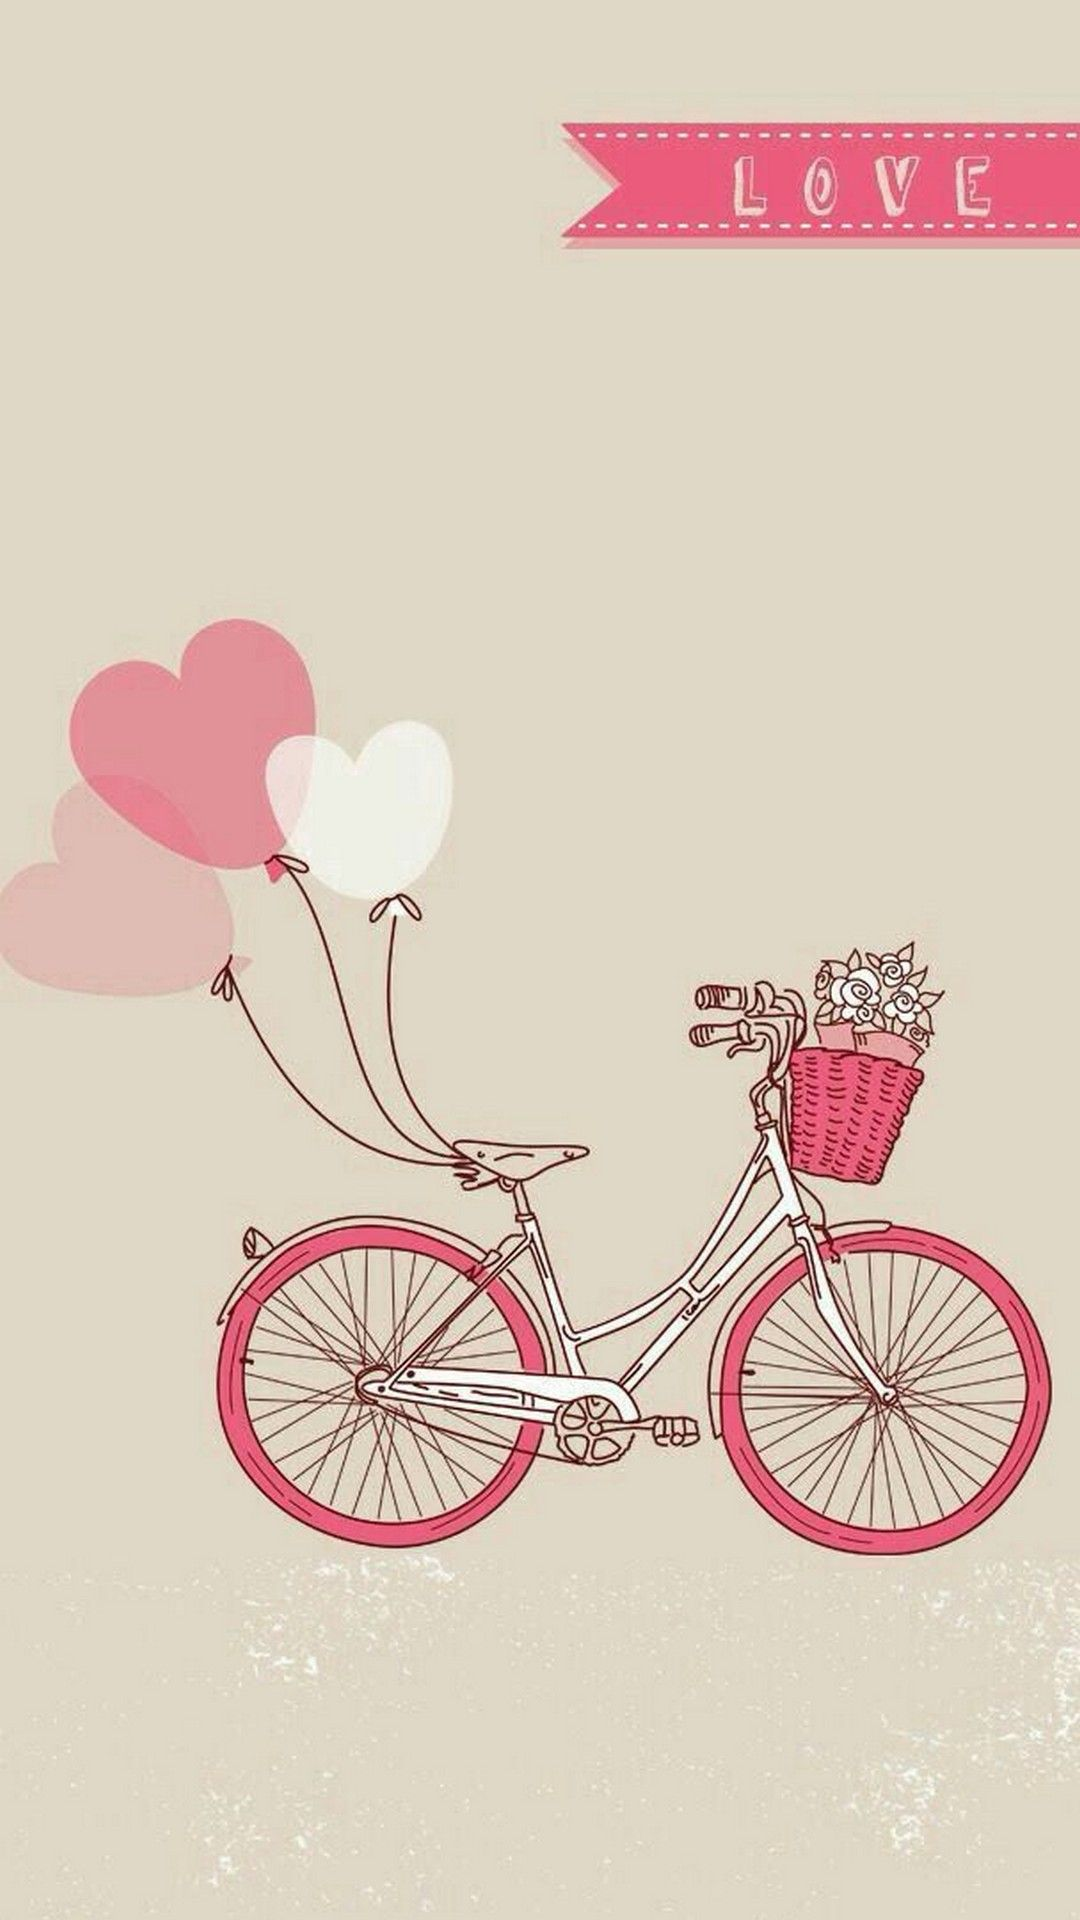 Cute Valentine For iPhone Wallpaper iPhoneWallpapers Bicycle 1080x1920